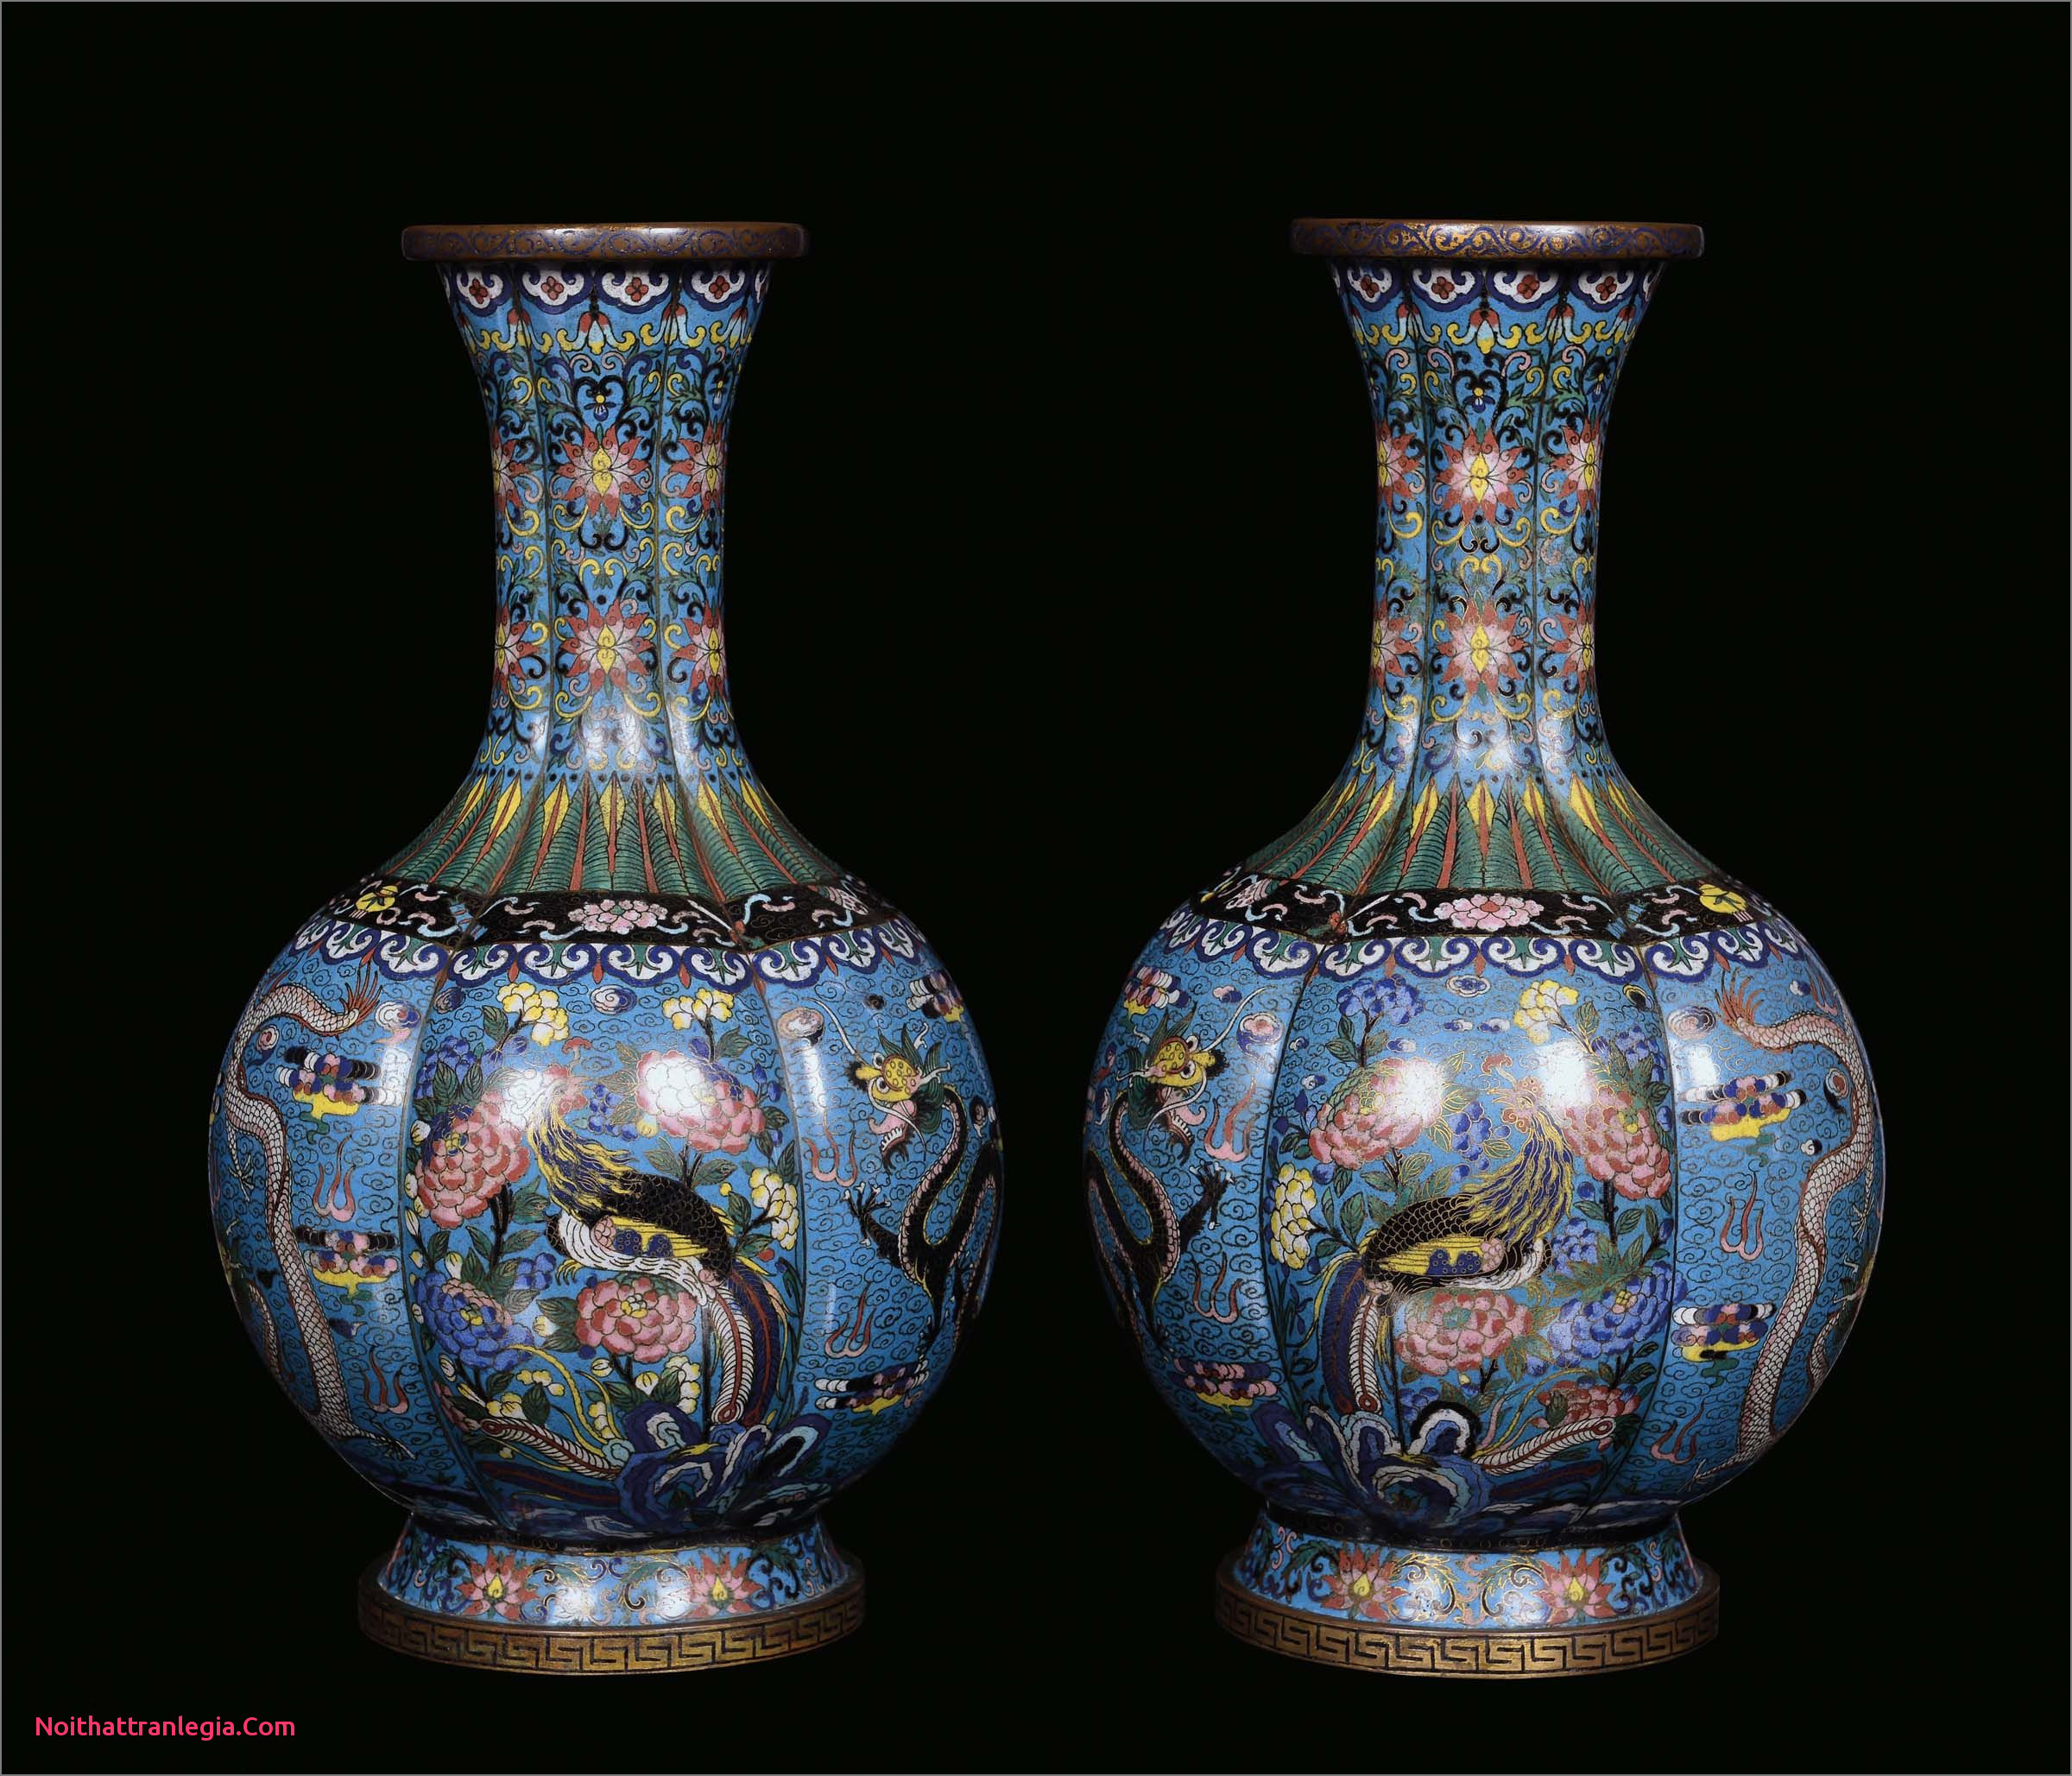 Vintage Usa Pottery Vases Of 20 Chinese Antique Vase Noithattranlegia Vases Design with Regard to A Pair Of Cloisonna Vases with Naturalistic Decoration China Qing Dynasty Guangxu Period